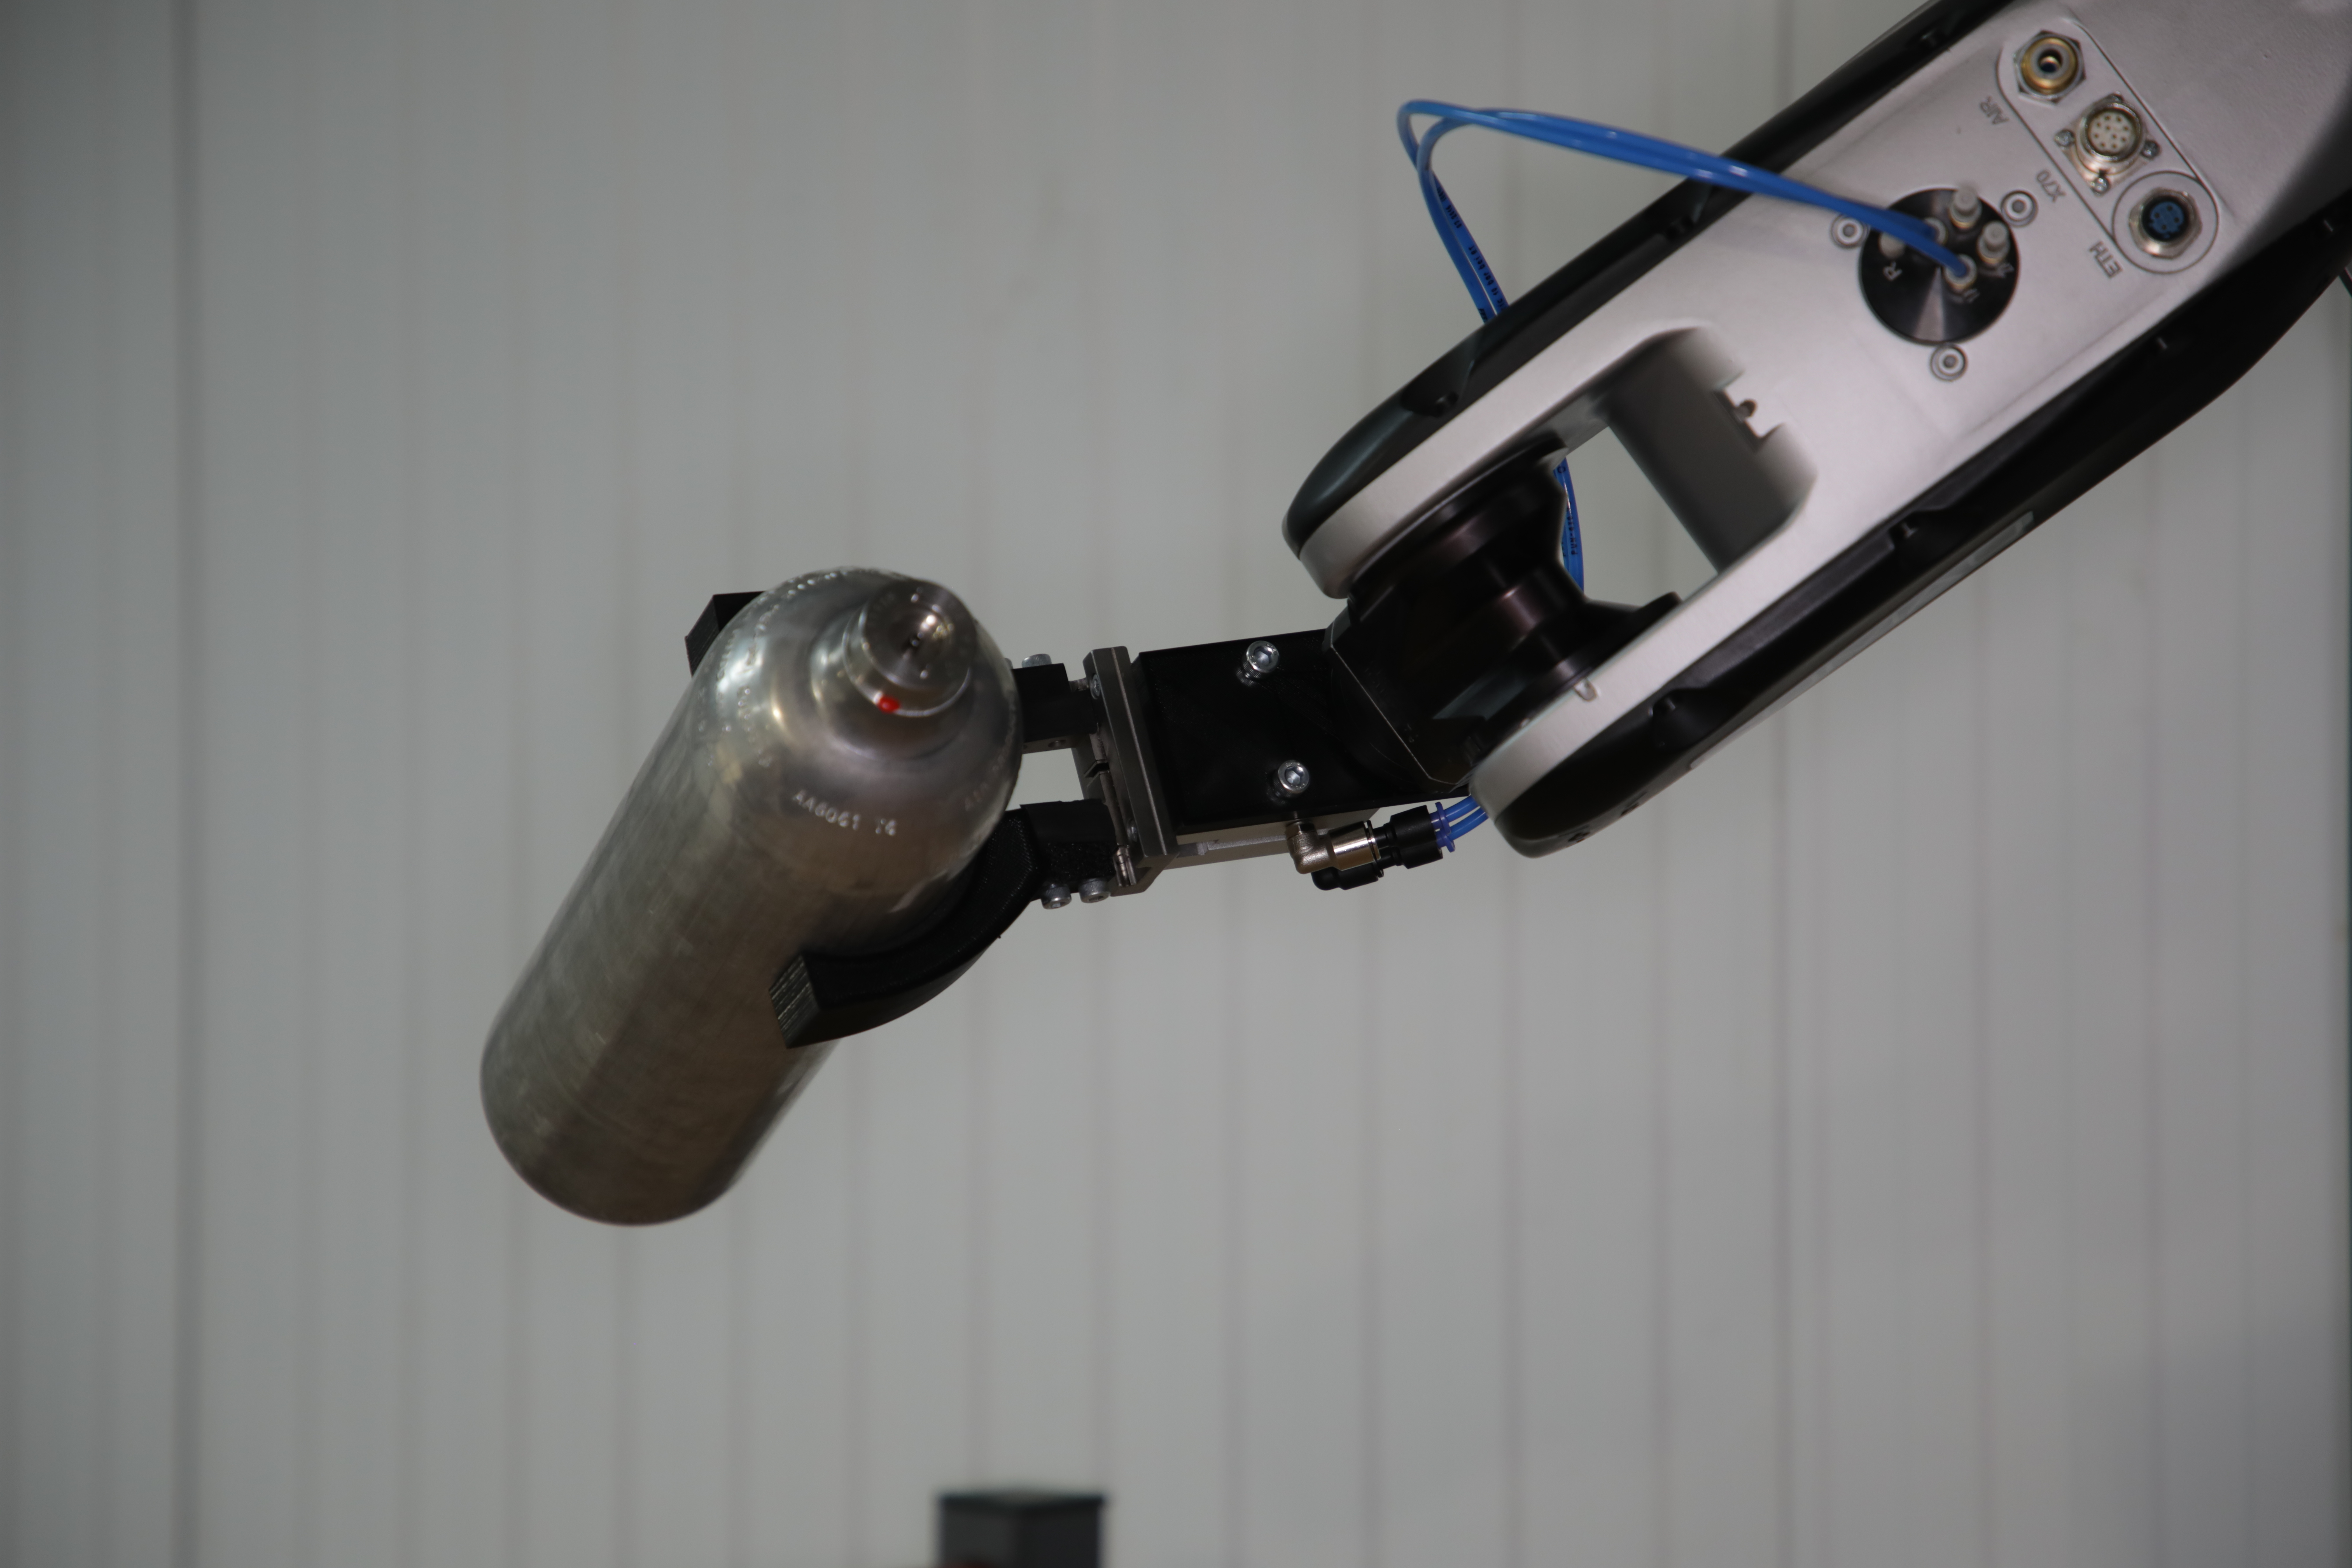 Robotic arm moving canister